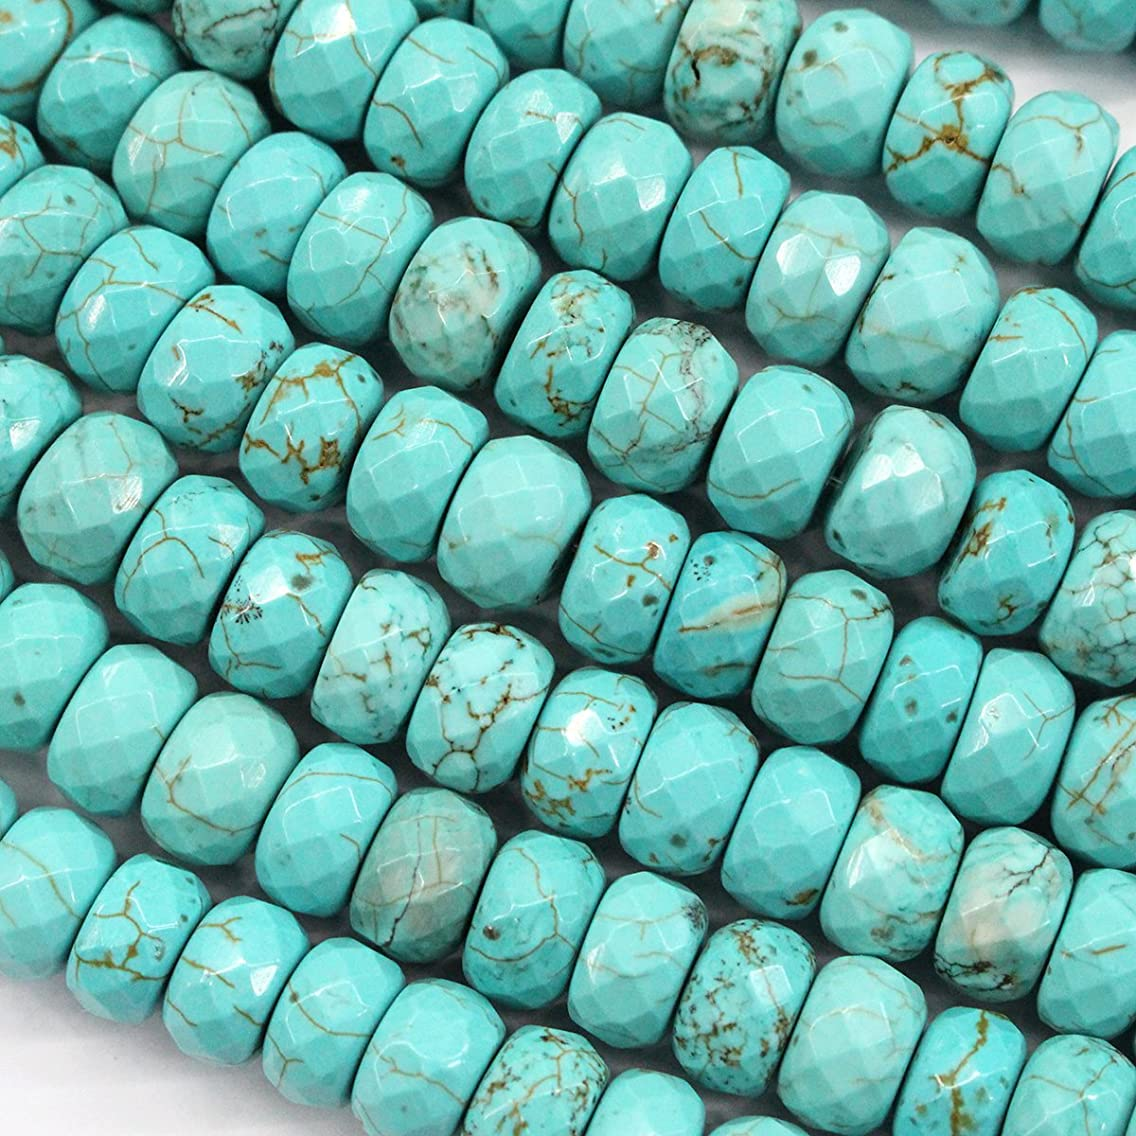 Natural Blue Turquoise Rondelle Gemstones Loose Beads Findings Jewerlry Making (faceted 8*12mm)